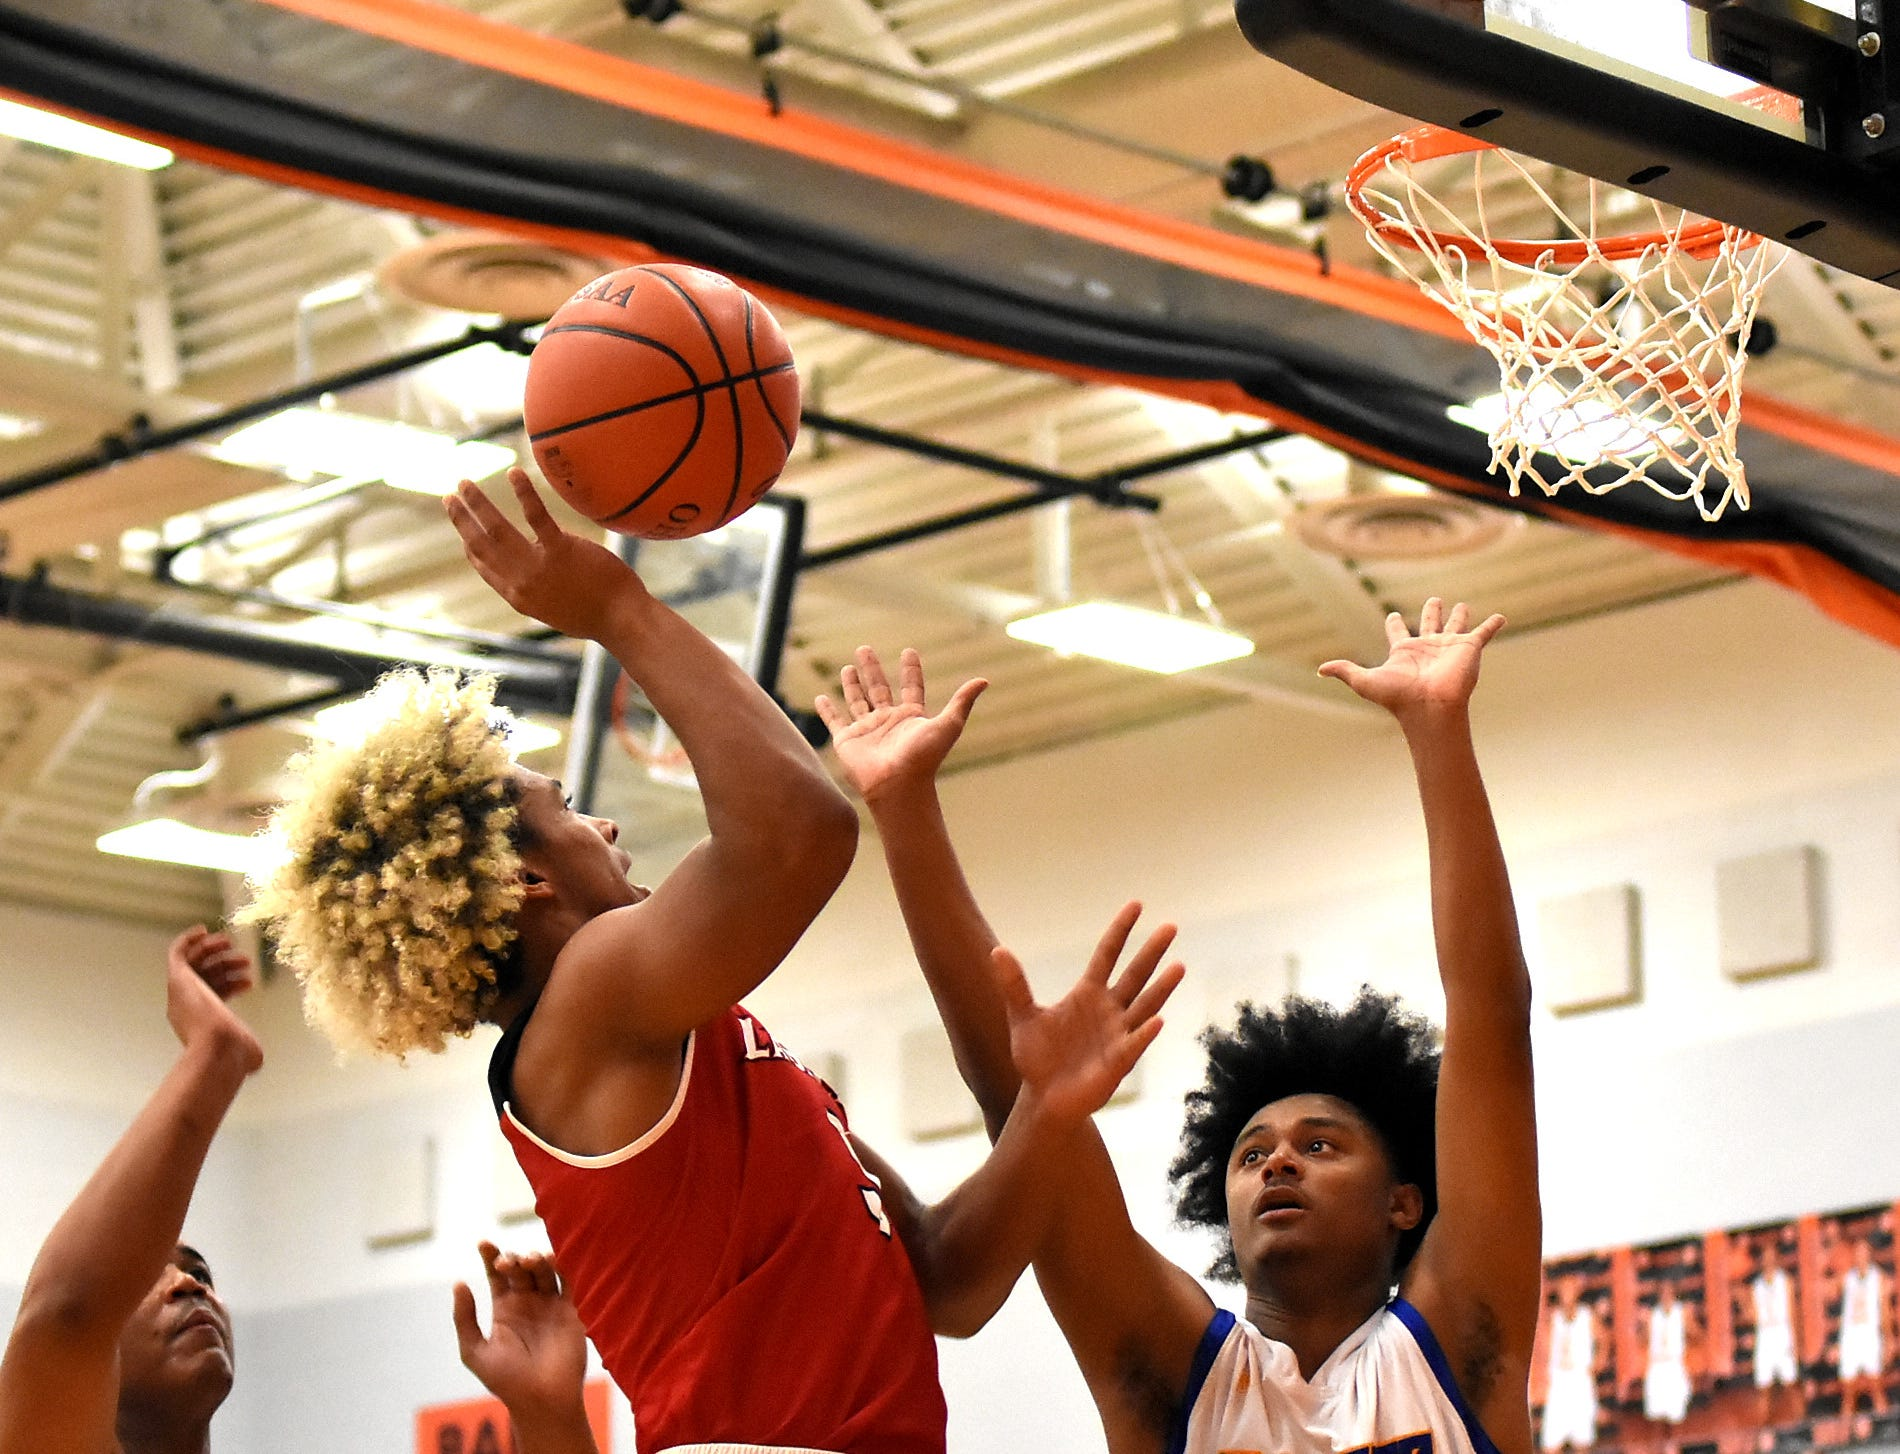 Deon Campbell eyes a basket from the baseline for La Salle, Nov. 30, 2018.